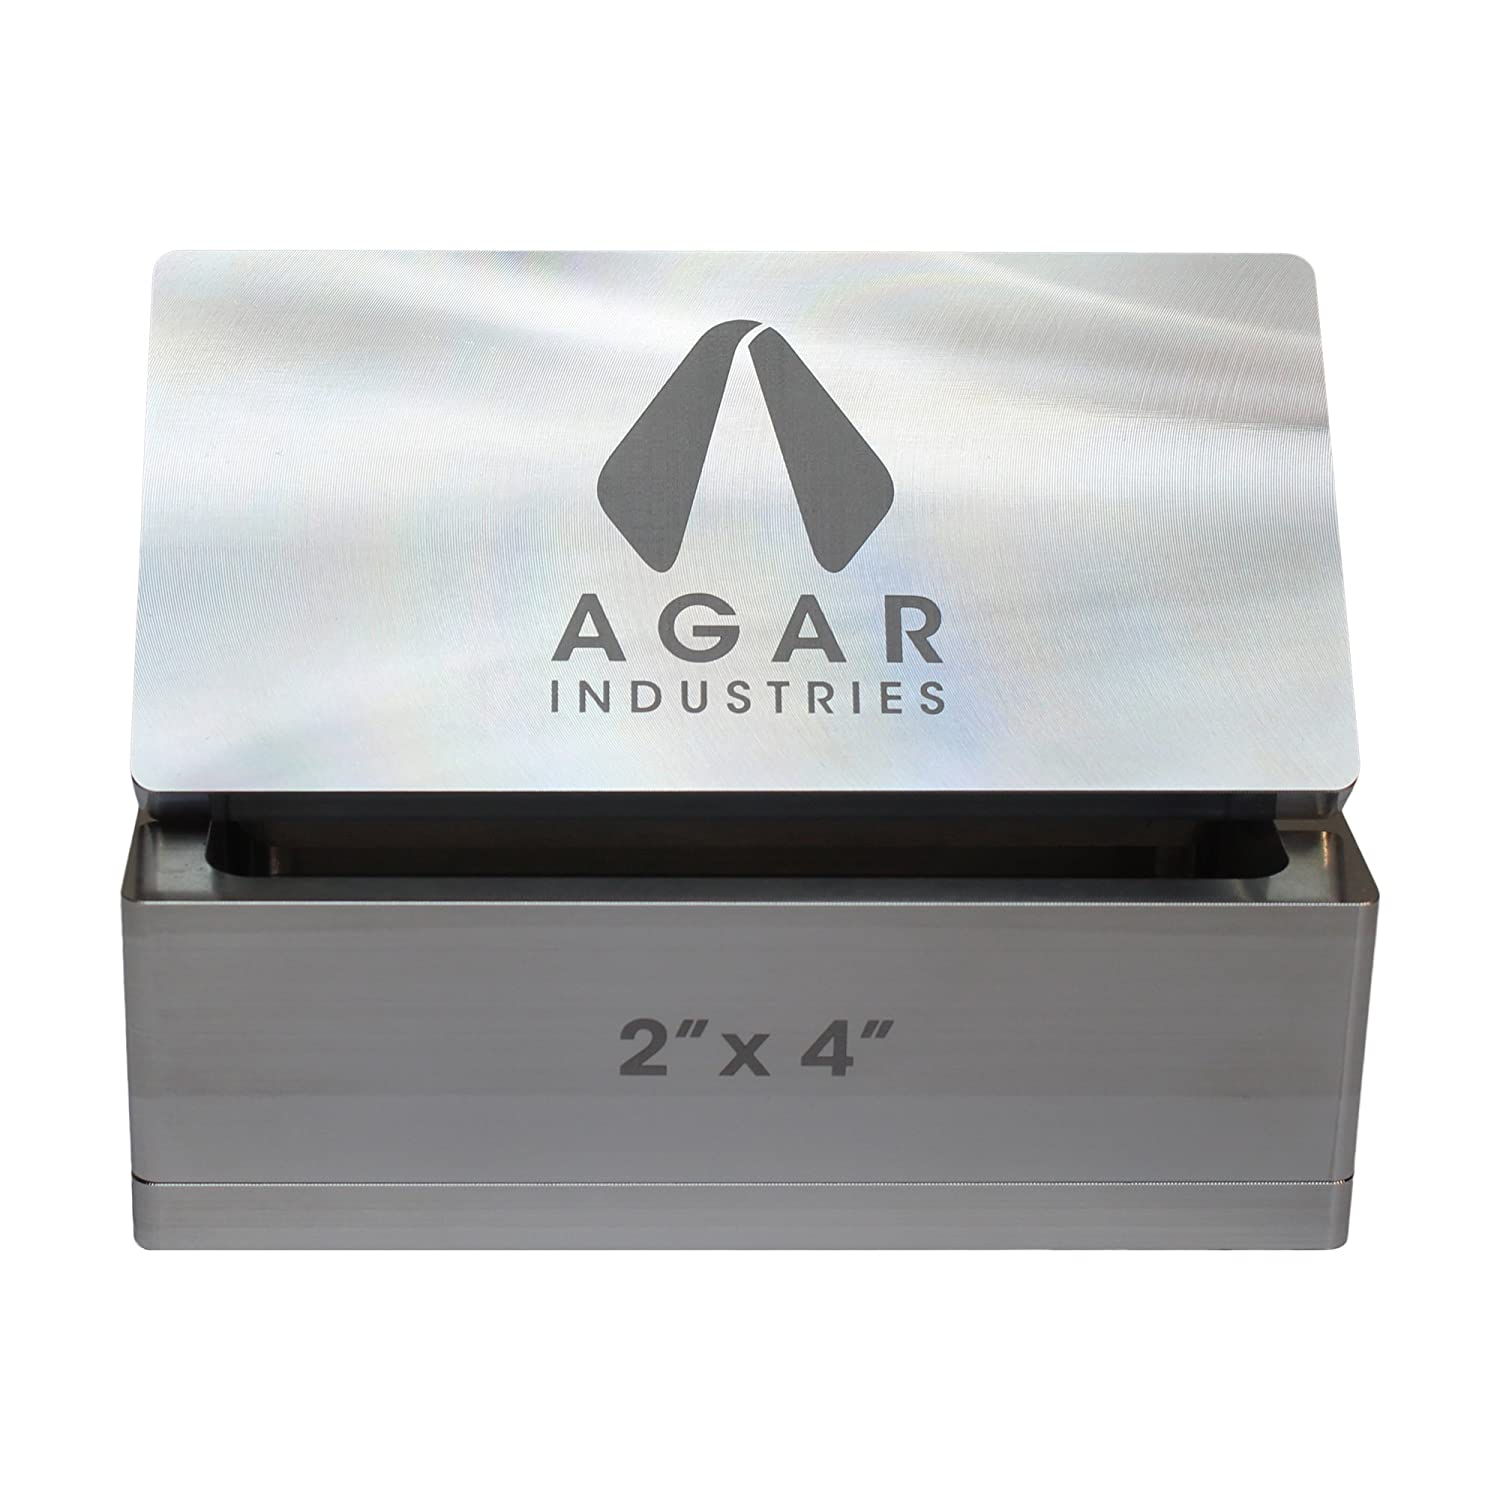 Agar Industries Rosin Pre Press Mold for DIY Solventless Extraction & Pressing - 2.5